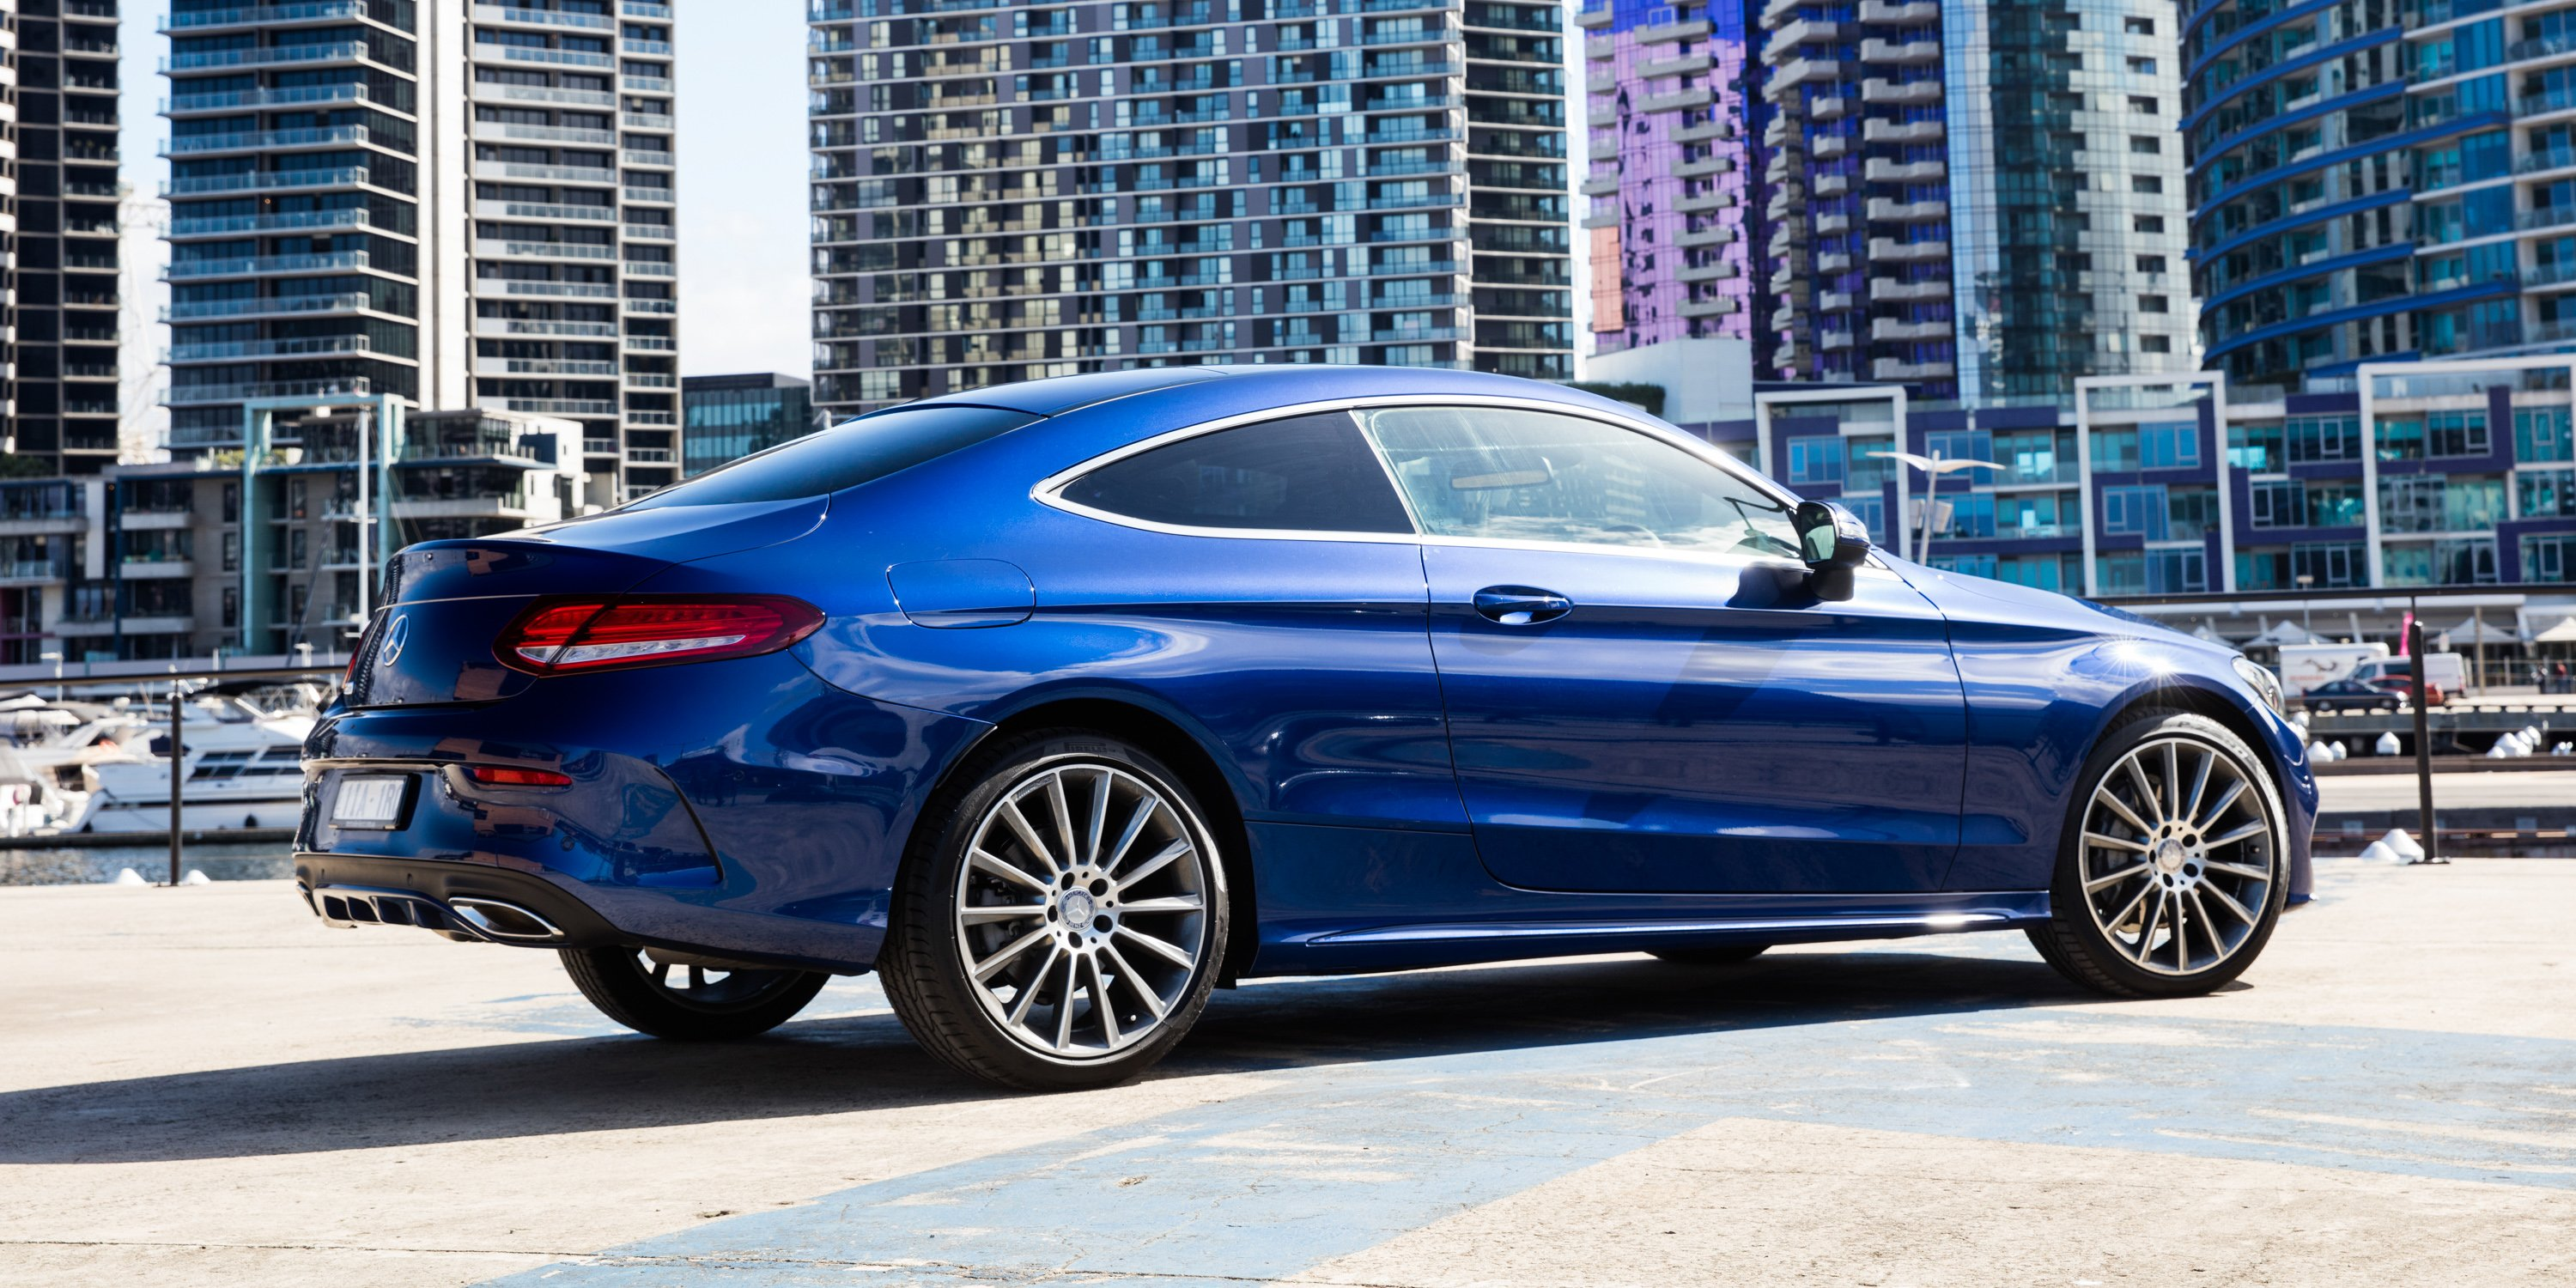 2018 Mercedes C300 Price >> 2016 Mercedes-Benz C-Class Coupe Review | CarAdvice